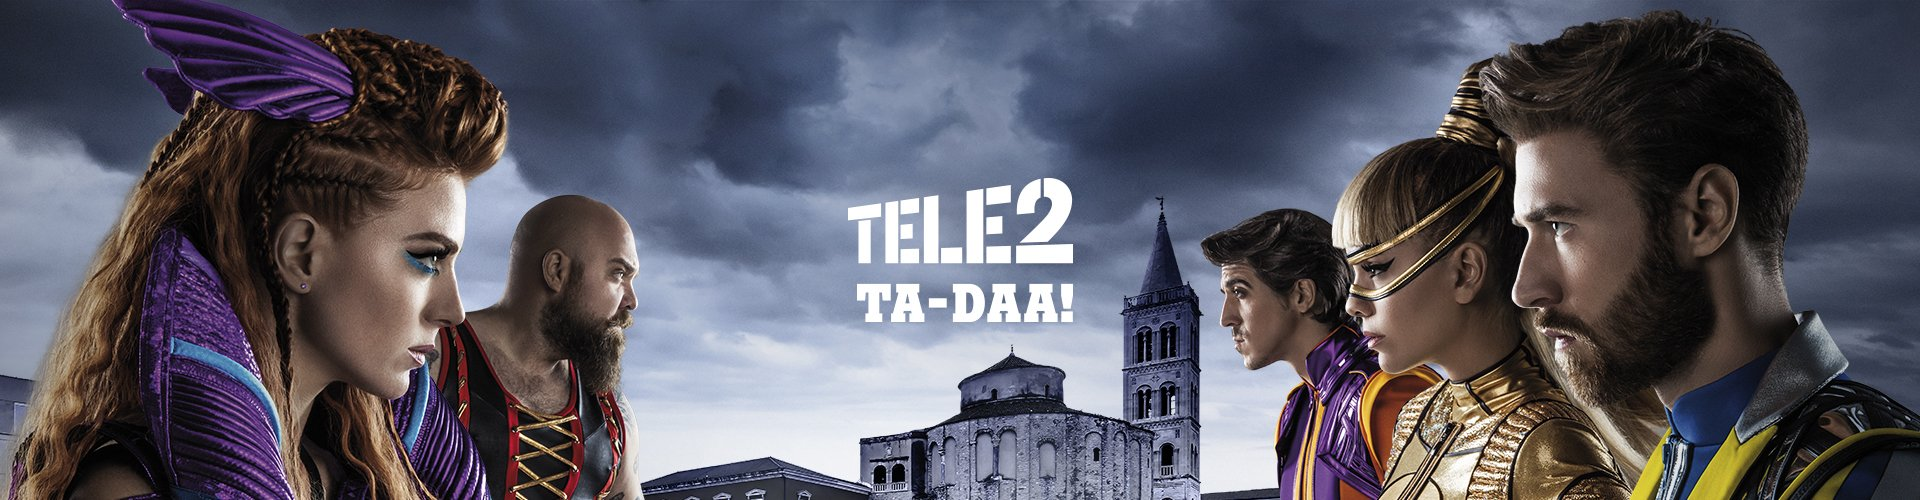 Tele2 | Garden Mall | Supernova